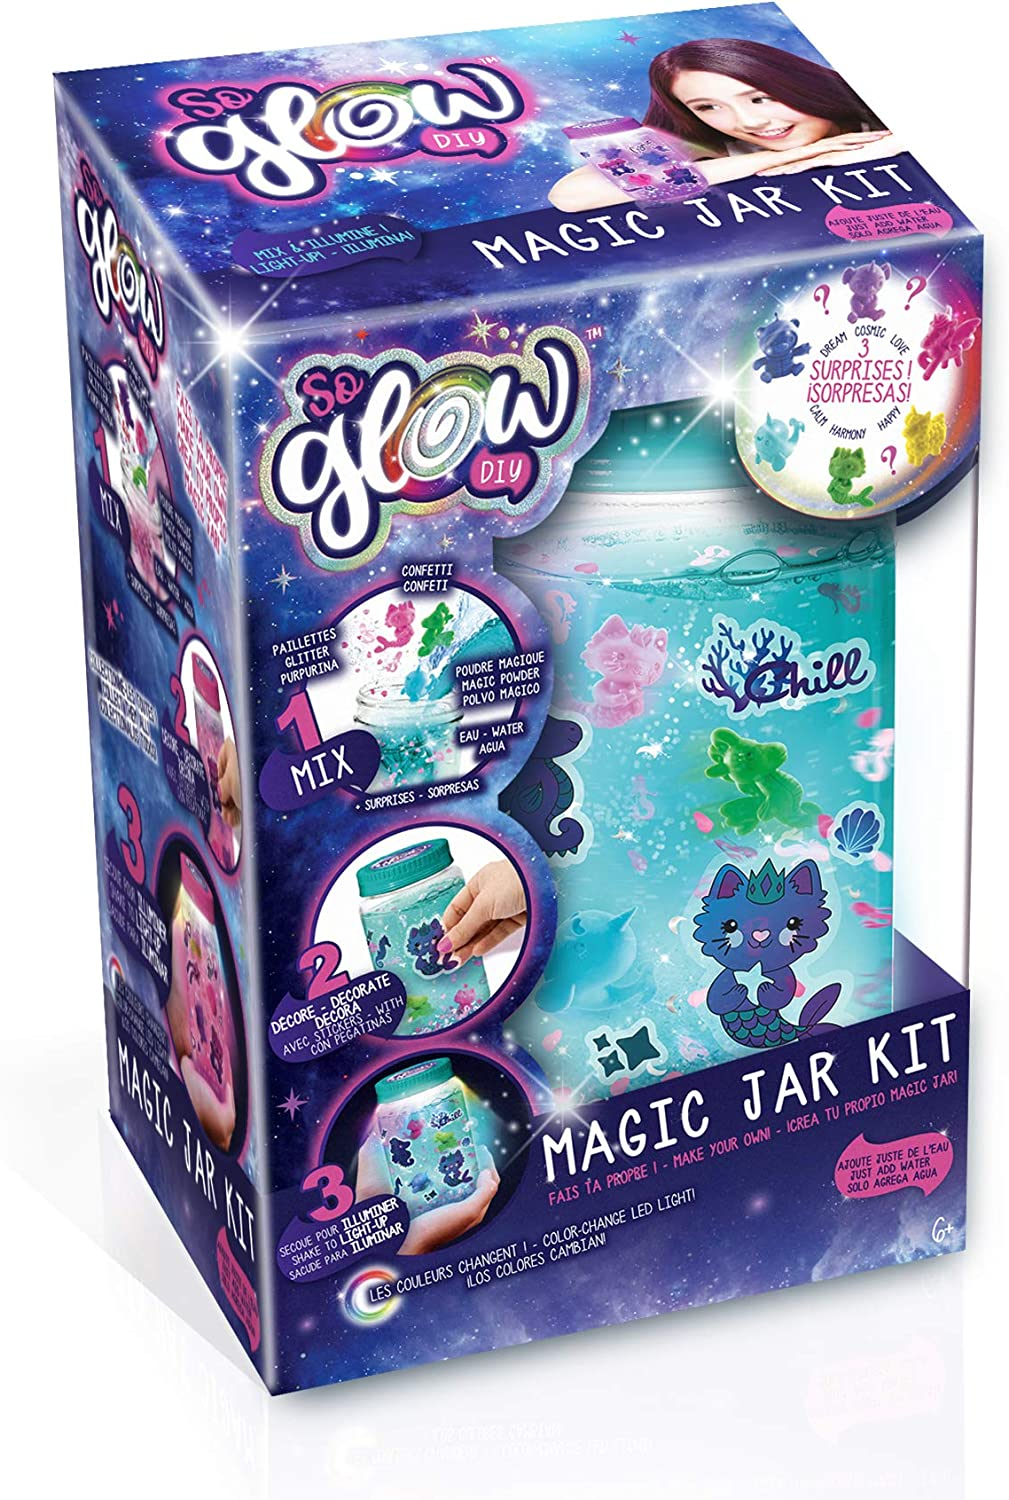 Canal Toys Kit de tarro So Glow DIY Magic Jar (botes de la calma), multicolor (SGD 002) , color/modelo surtido: Amazon.es: Juguetes y juegos